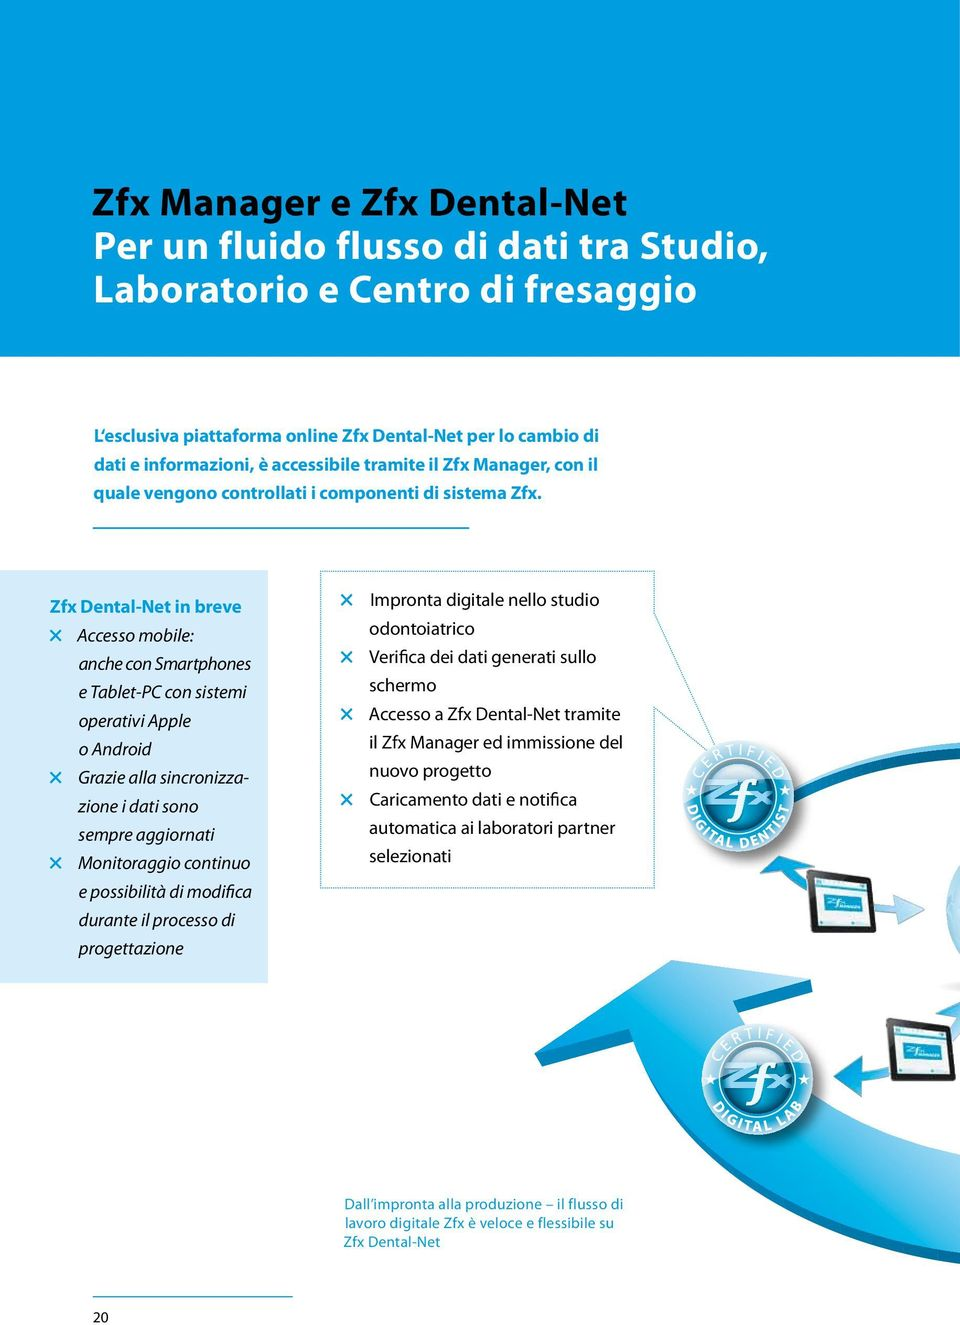 Zfx Dental-Net in breve Accesso mobile: anche con Smartphones e Tablet-PC con sistemi operativi Apple o Android Grazie alla sincronizzazione i dati sono sempre aggiornati Monitoraggio continuo e